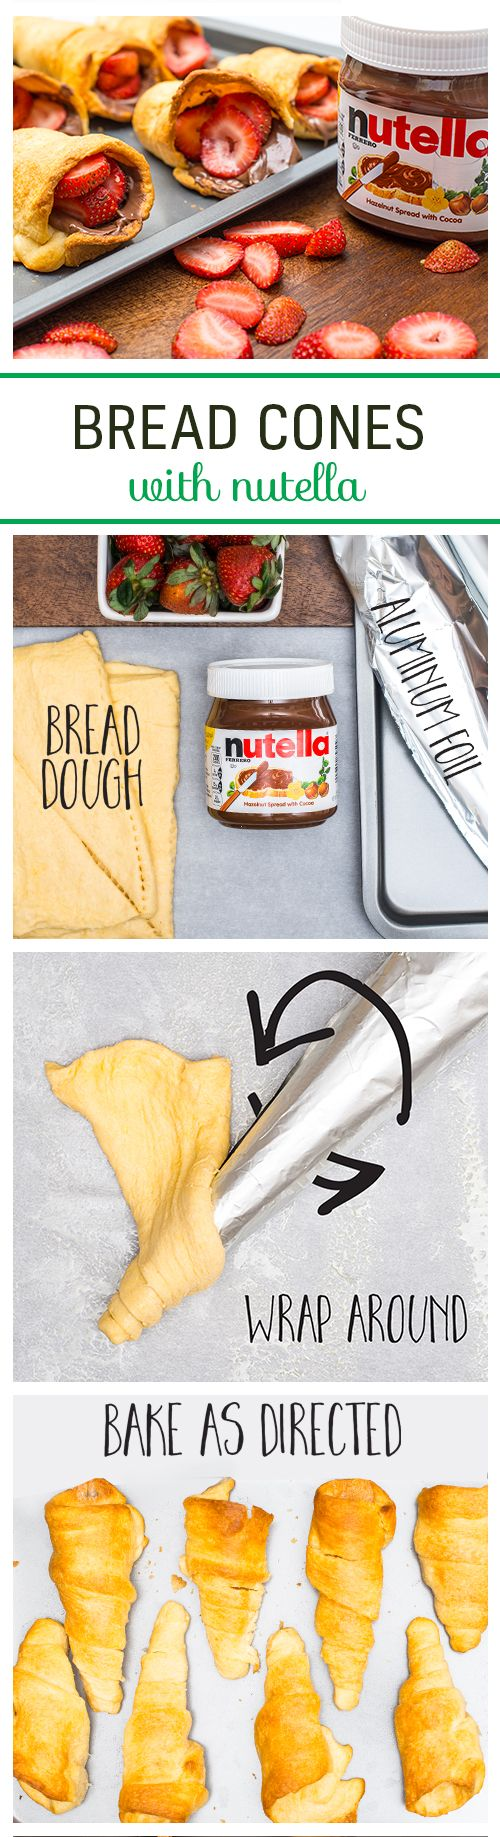 For a pick-me-up you won't want to put down, try these fun bread cones. First, make aluminum foil cones and wrap your pre-made dough around them. Bake as directed. When the cones are cool, remove the foil cones and fill the center of the bread with Nutella® and strawberries, grab and go!